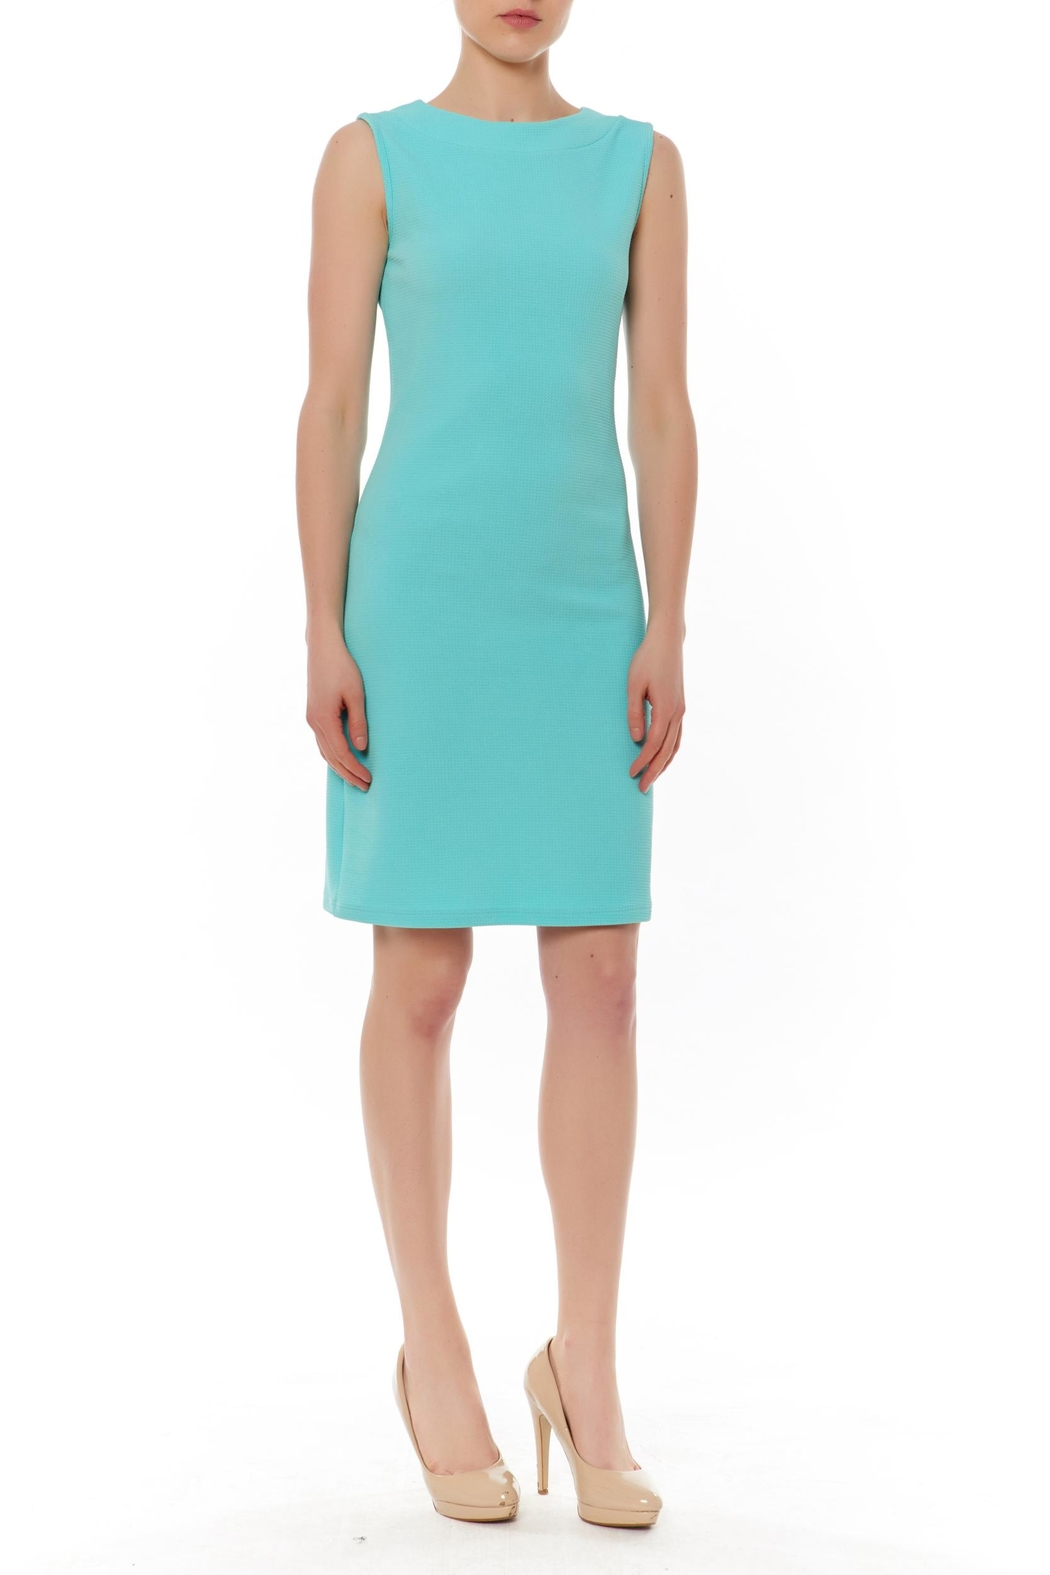 PAPILLON BLANC Sleevless Shift Dress - Front Cropped Image